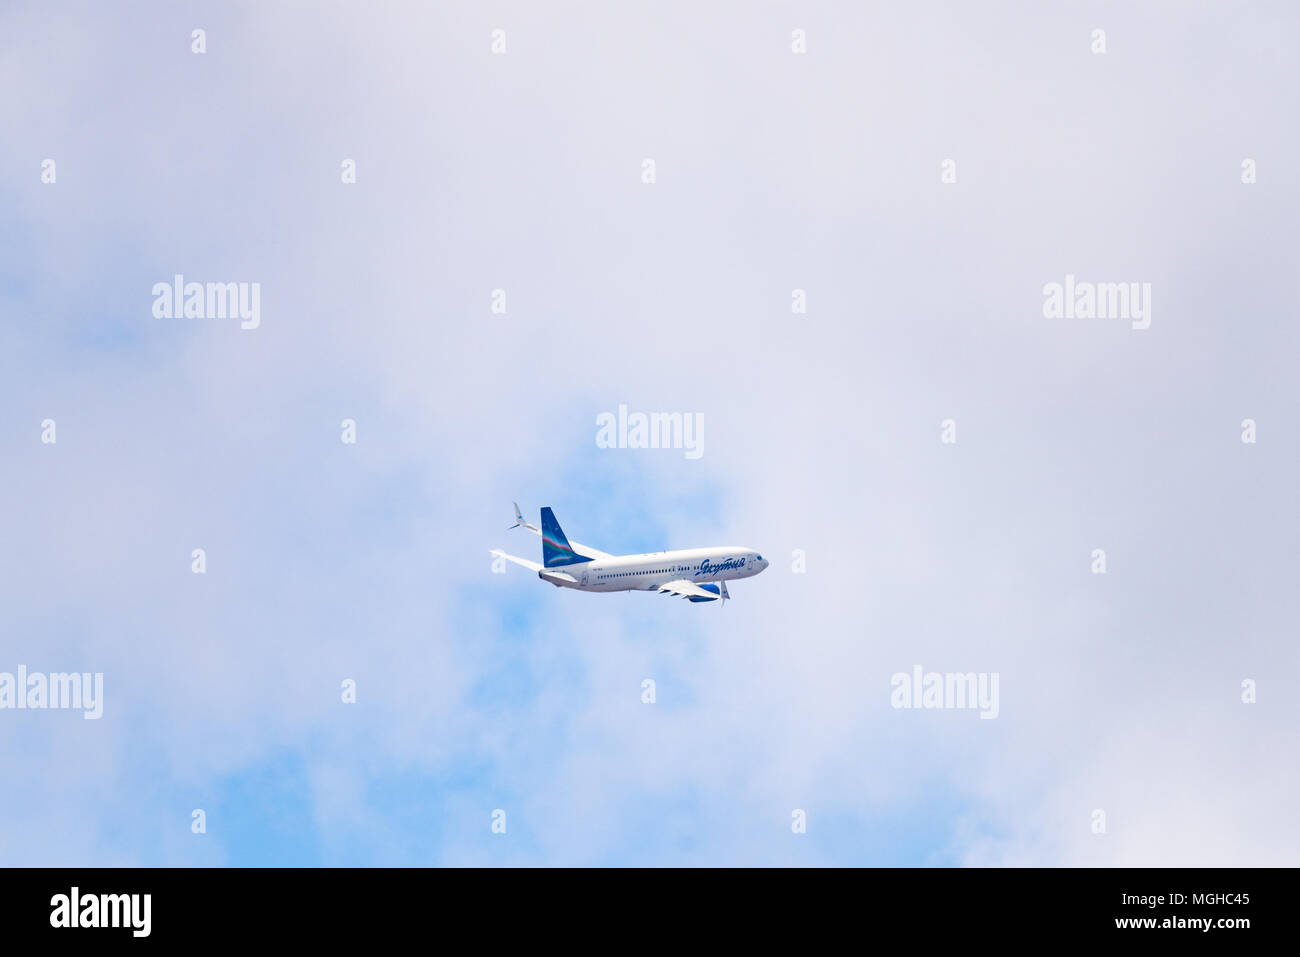 Novosibirsk, Russia - April 27, 2018: Boeing 737-86N VQ-BIZ Yakutia Airlines  after takeoff from Tolmachevo International Airport. - Stock Image